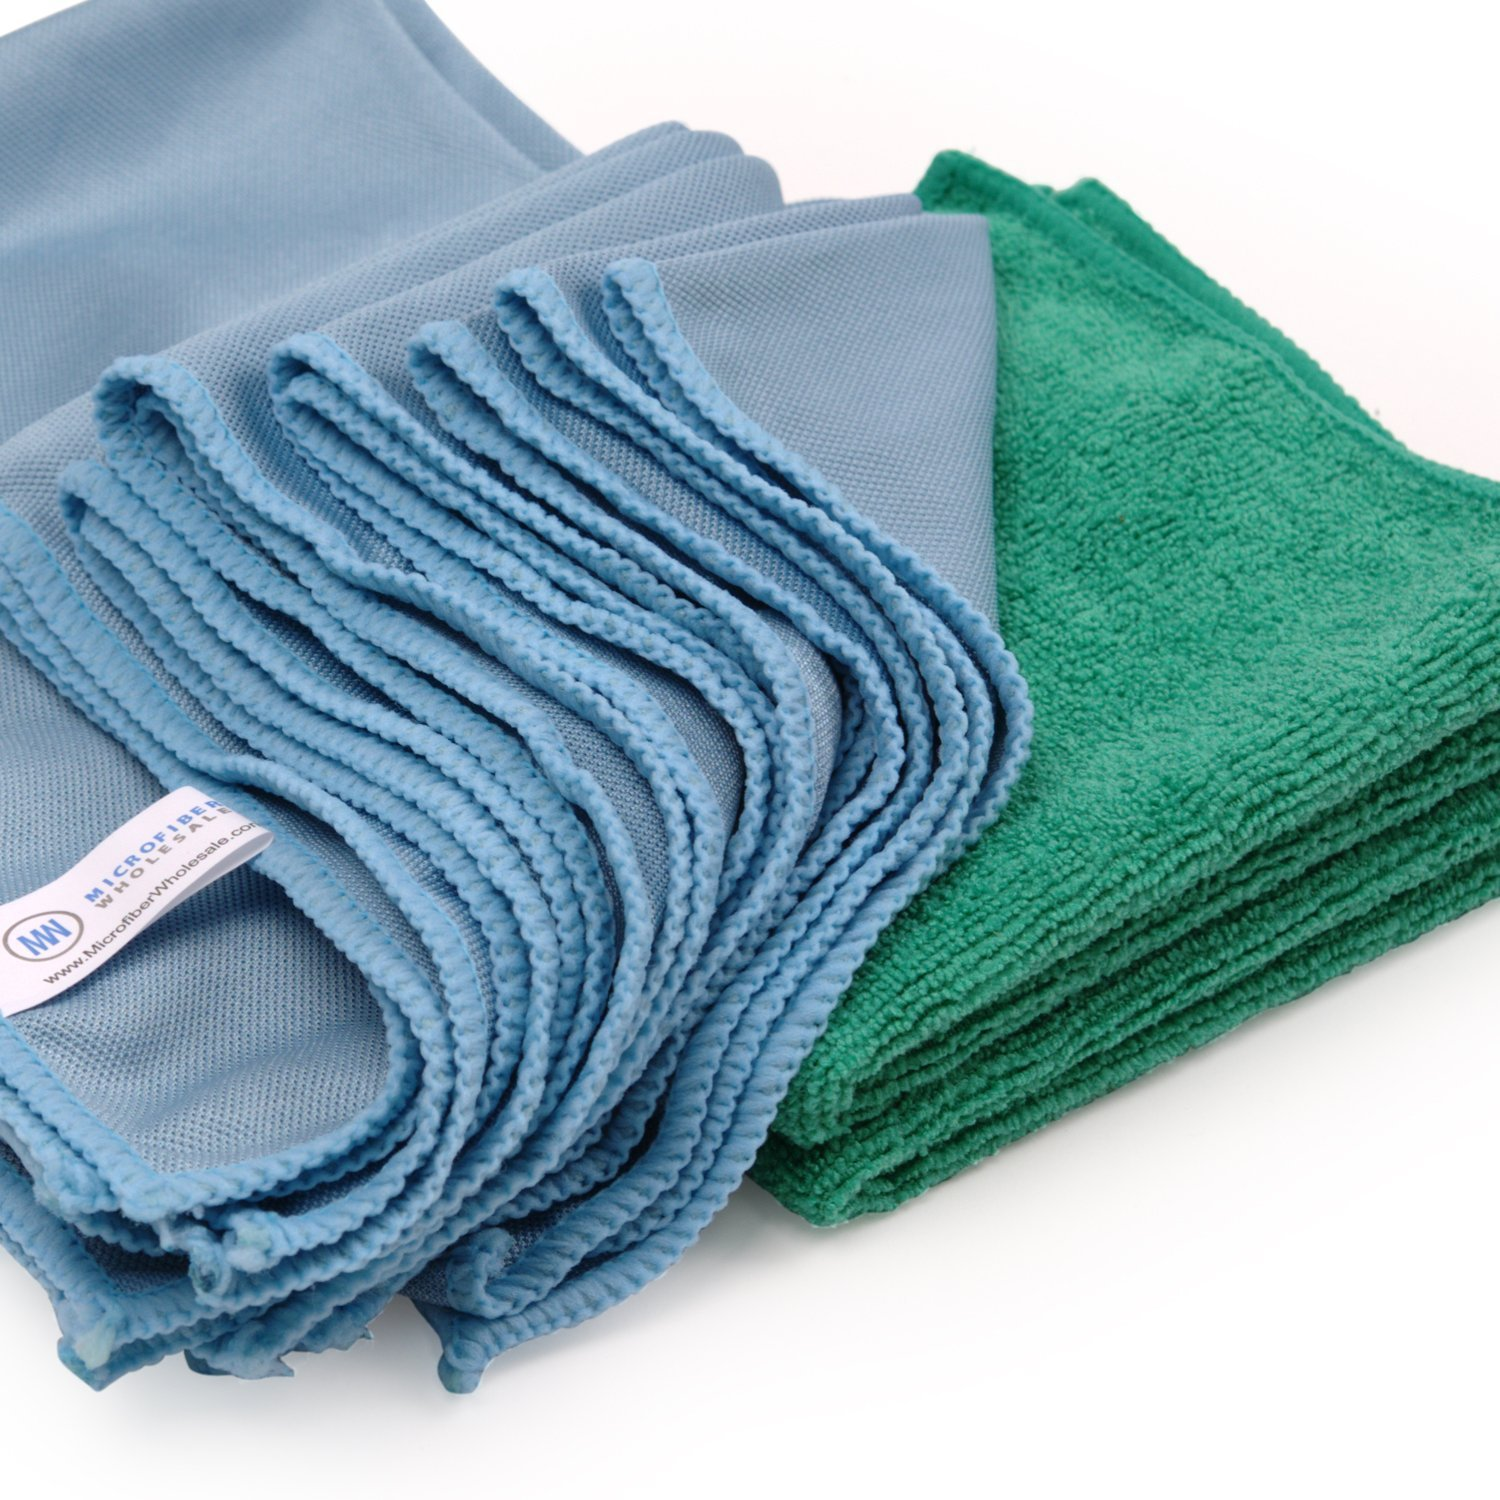 Amazon.com: Microfiber Glass Cleaning Cloths - 8 Pack | Lint Free ...